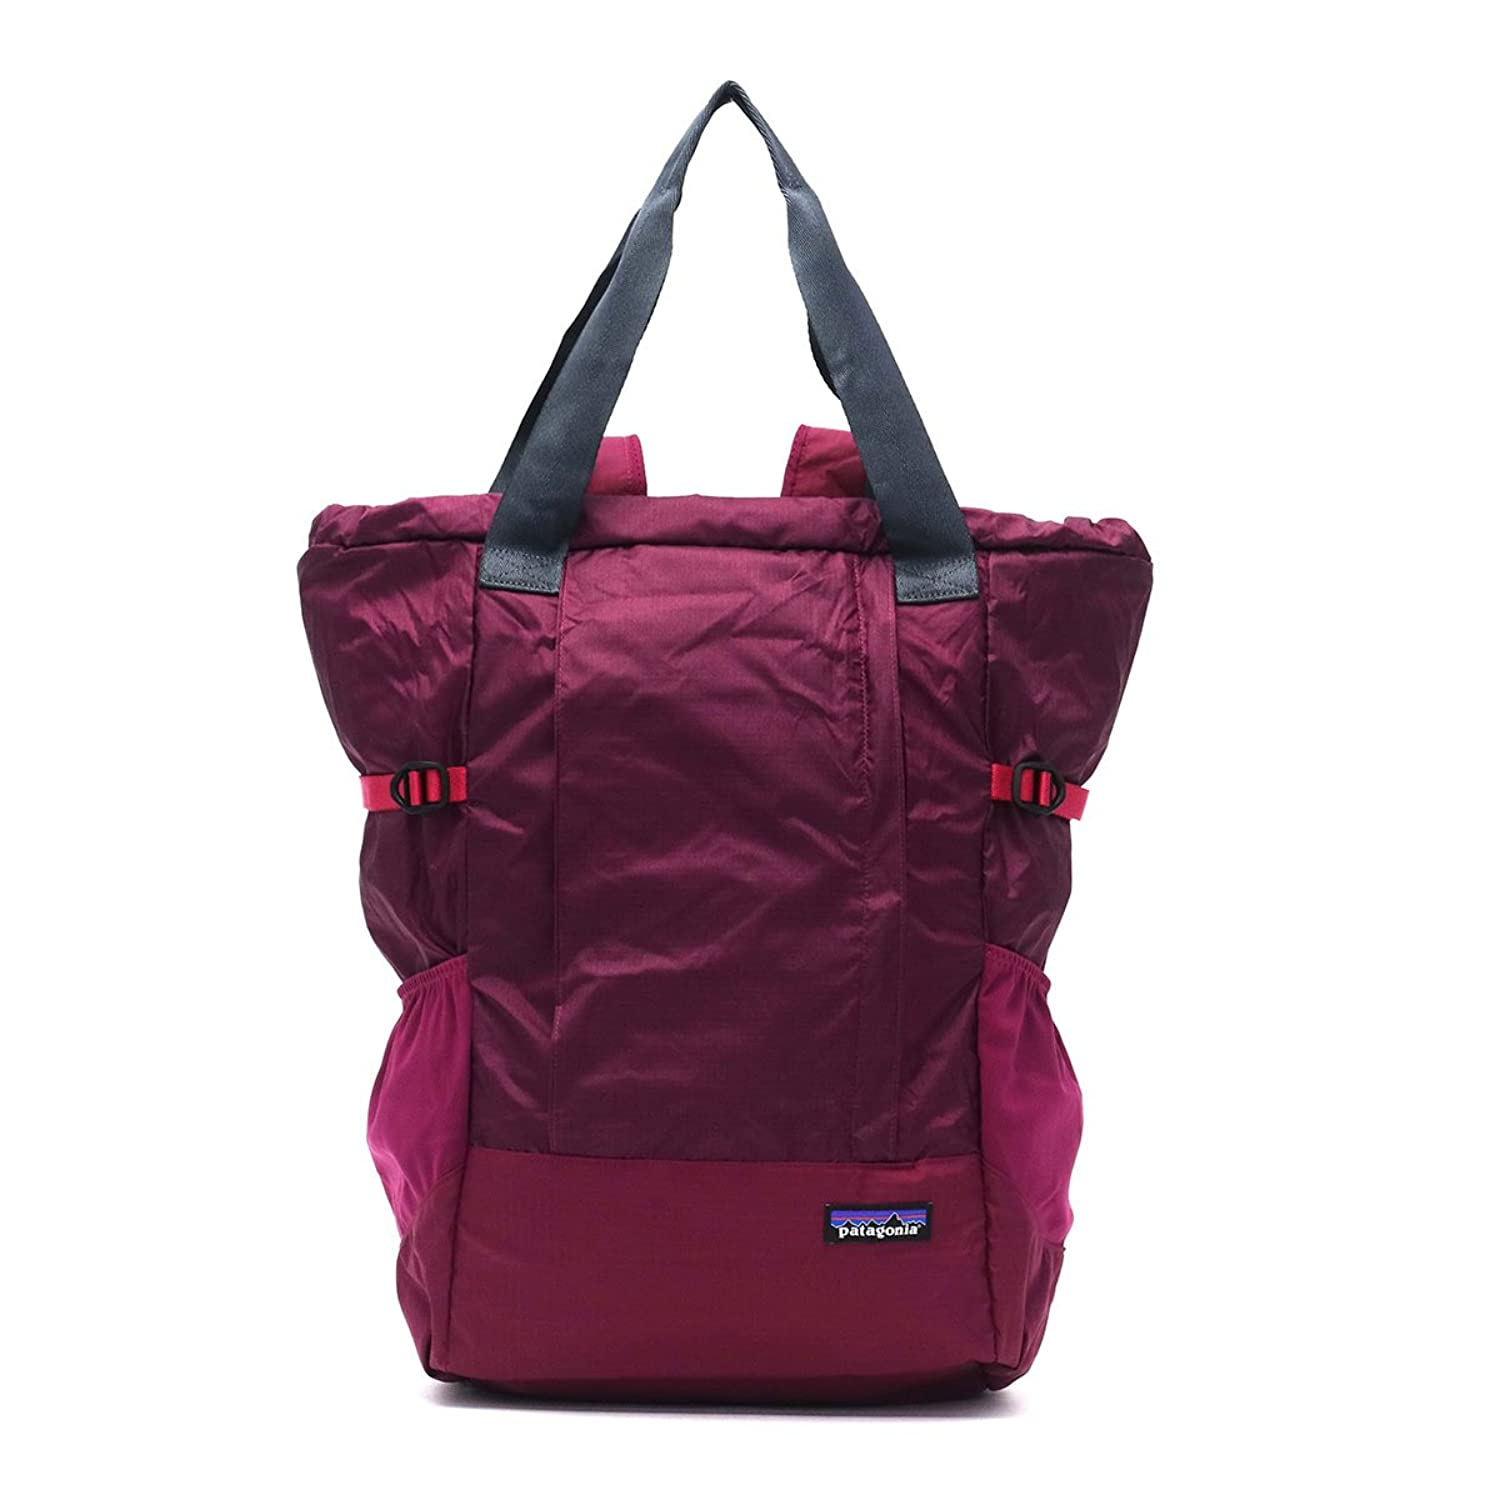 [パタゴニア] patagonia トートバック LW Travel Tote Pack B0734K9VQ5MAG